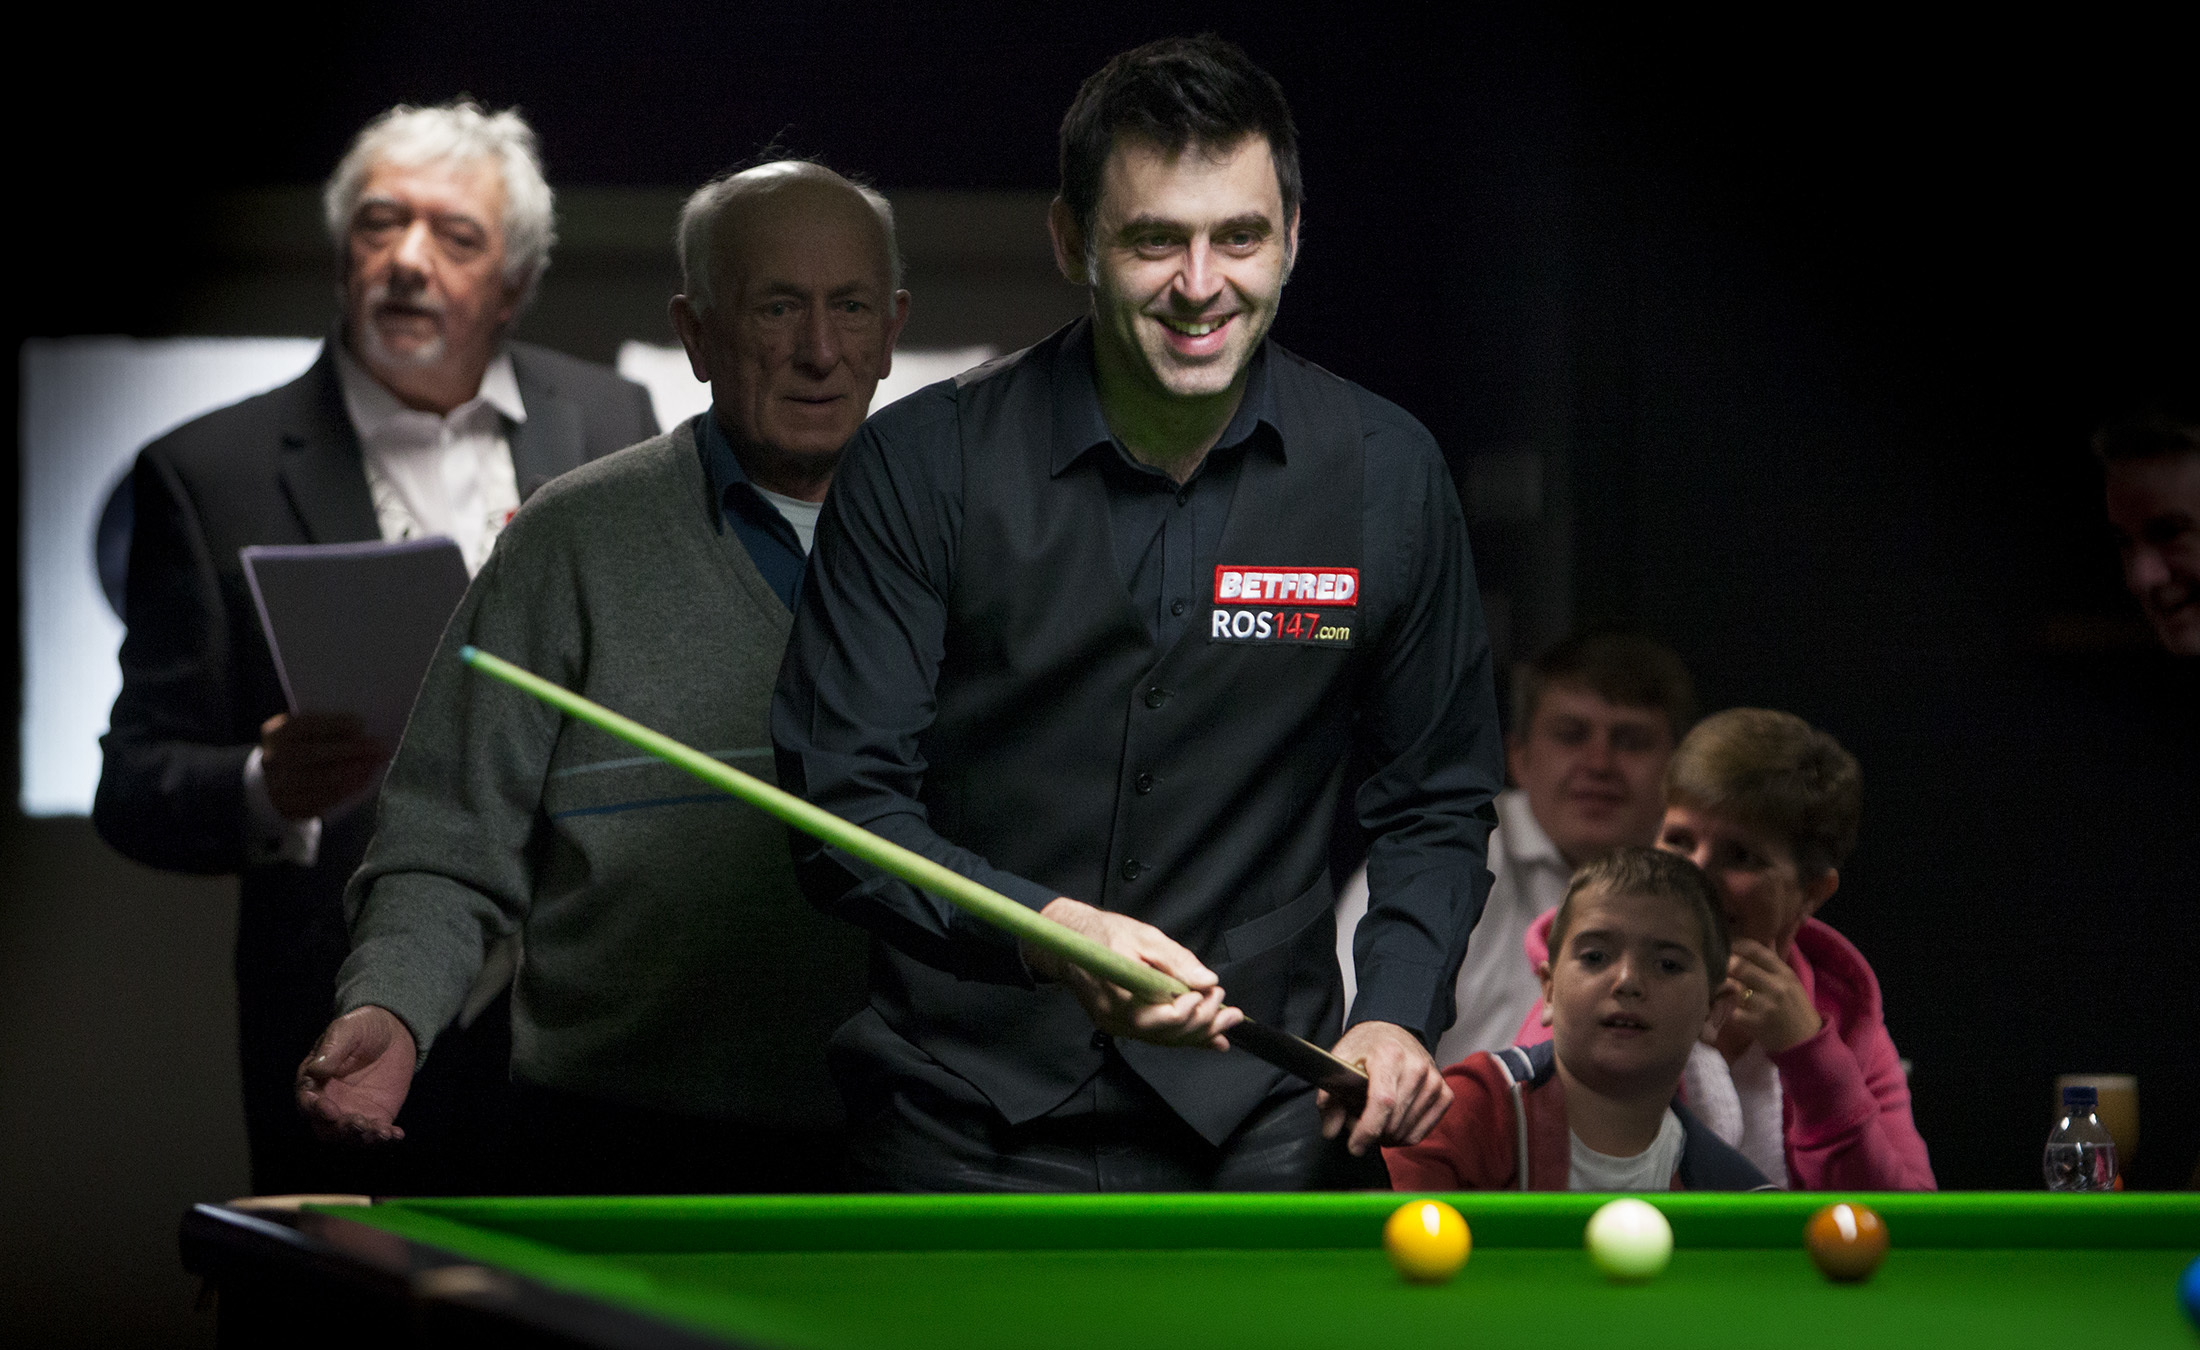 Ronnie O'Sullivan at Shotz Snooker Club in Arbroath.